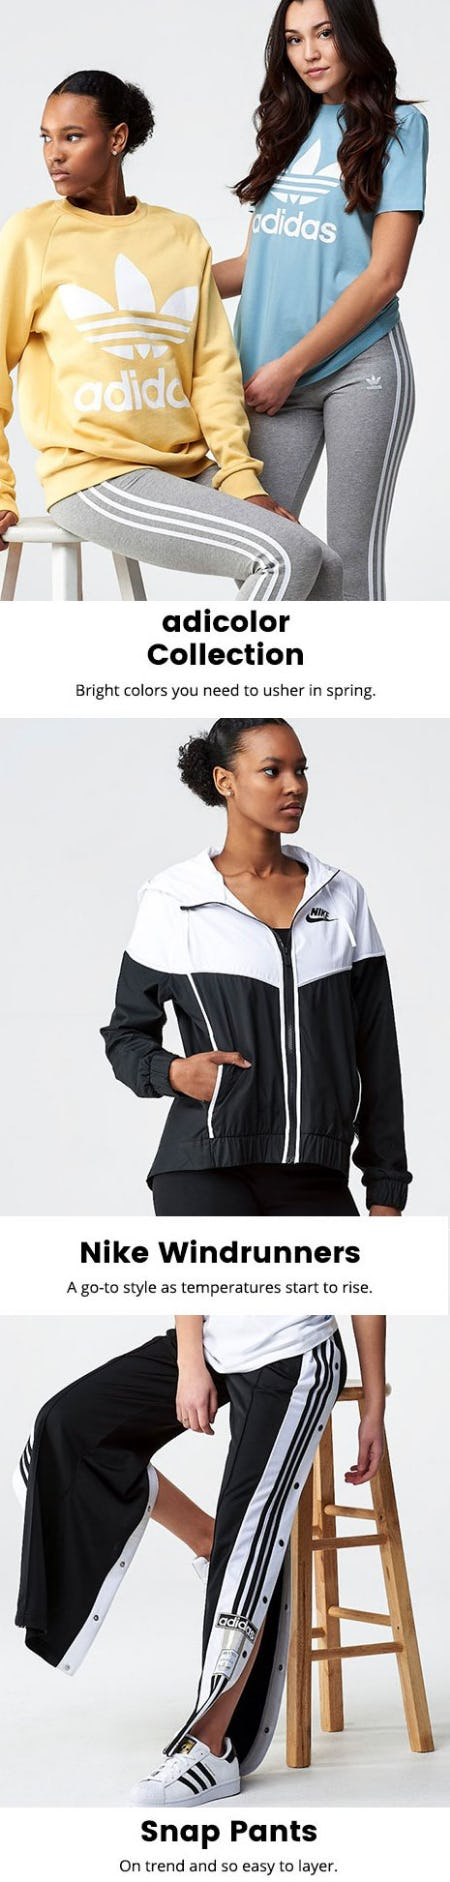 Must-Have Styles for Spring from Lady Foot Locker